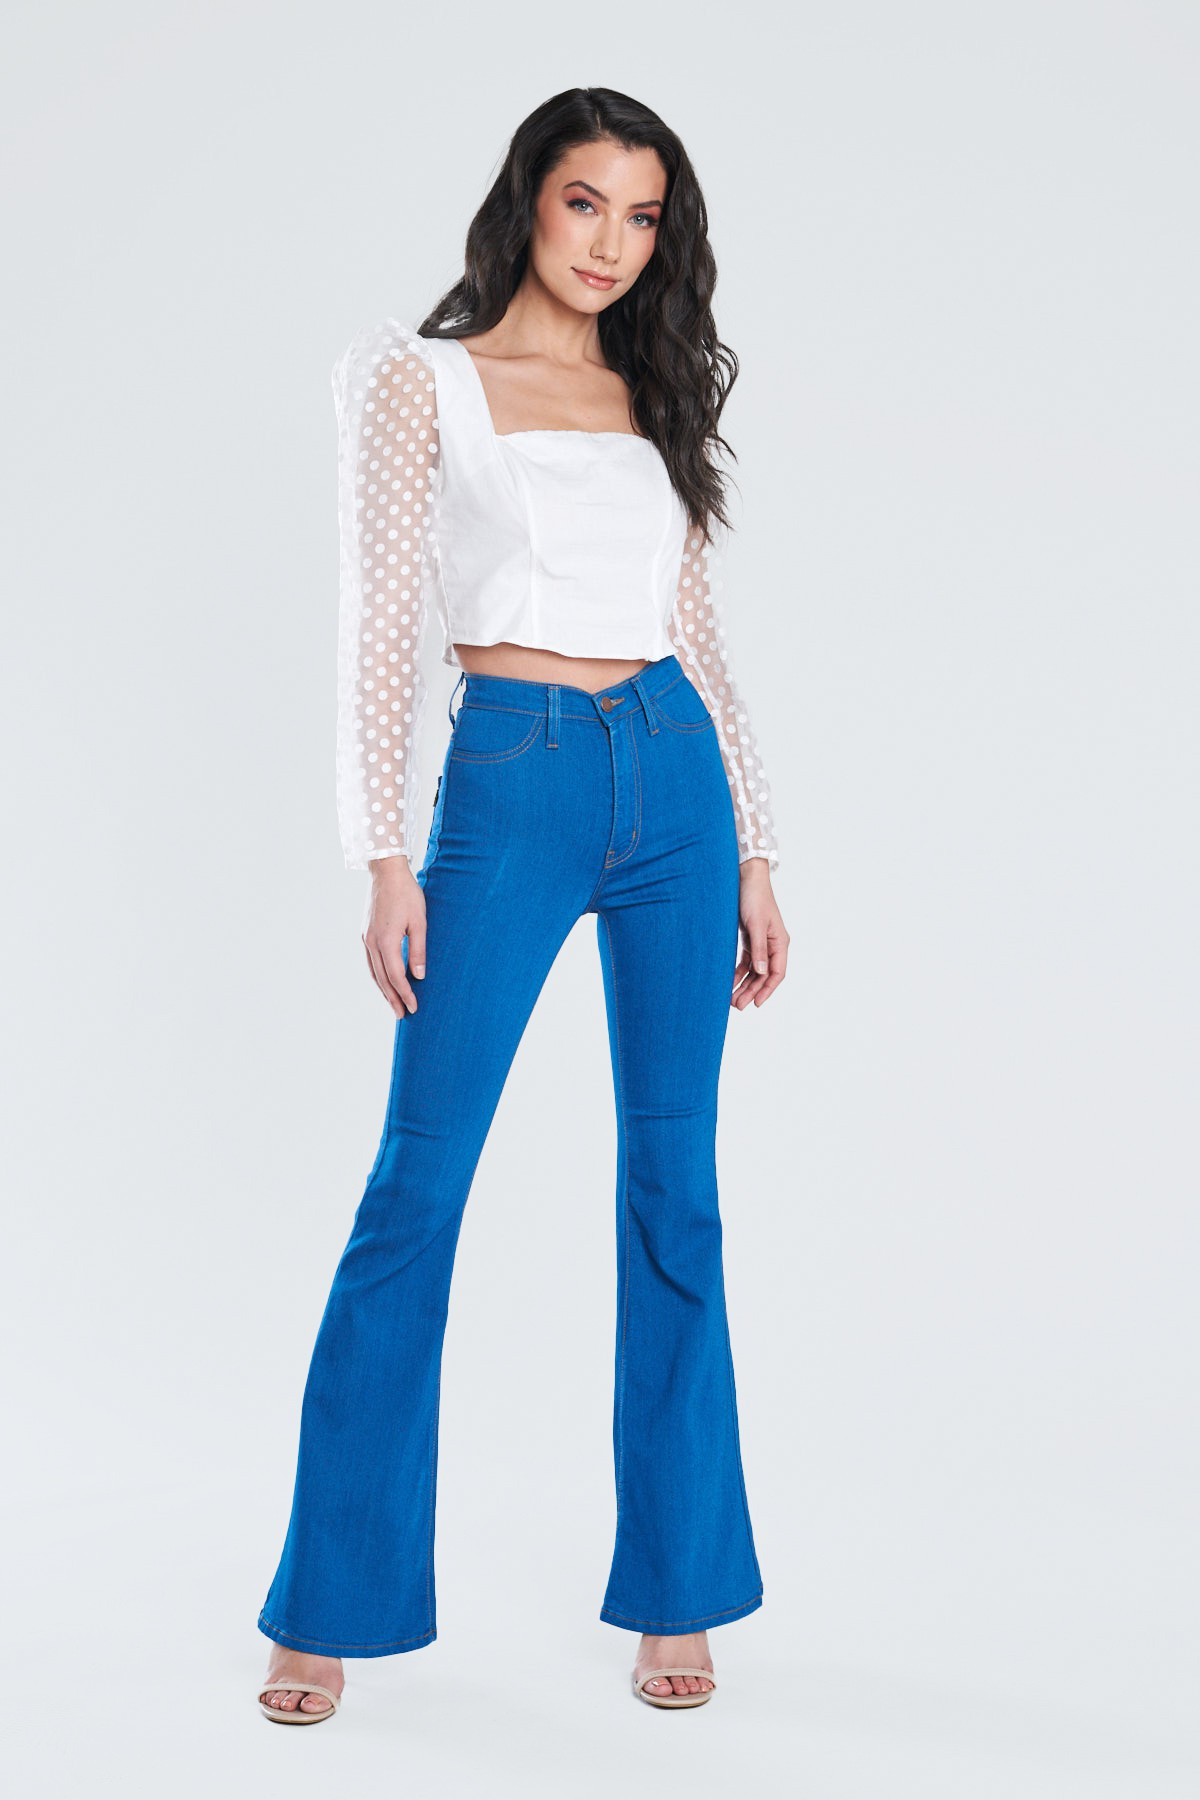 Perfect Fit Flare Jeans -PB - Front